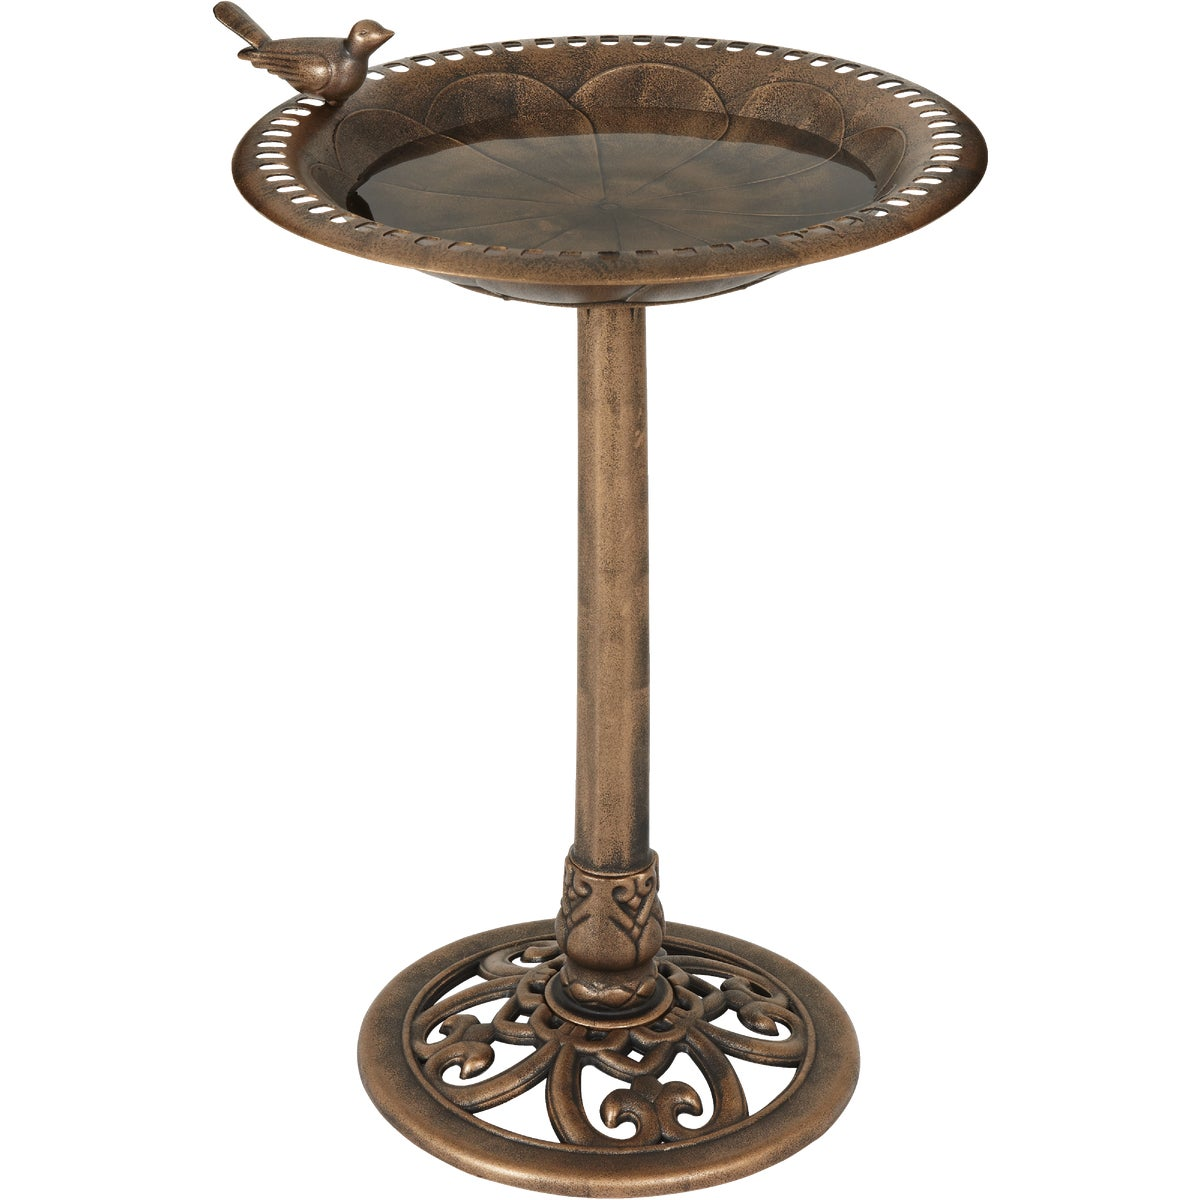 PEDESTAL BIRD BATH - BA01281 by Gardman Usa Inc